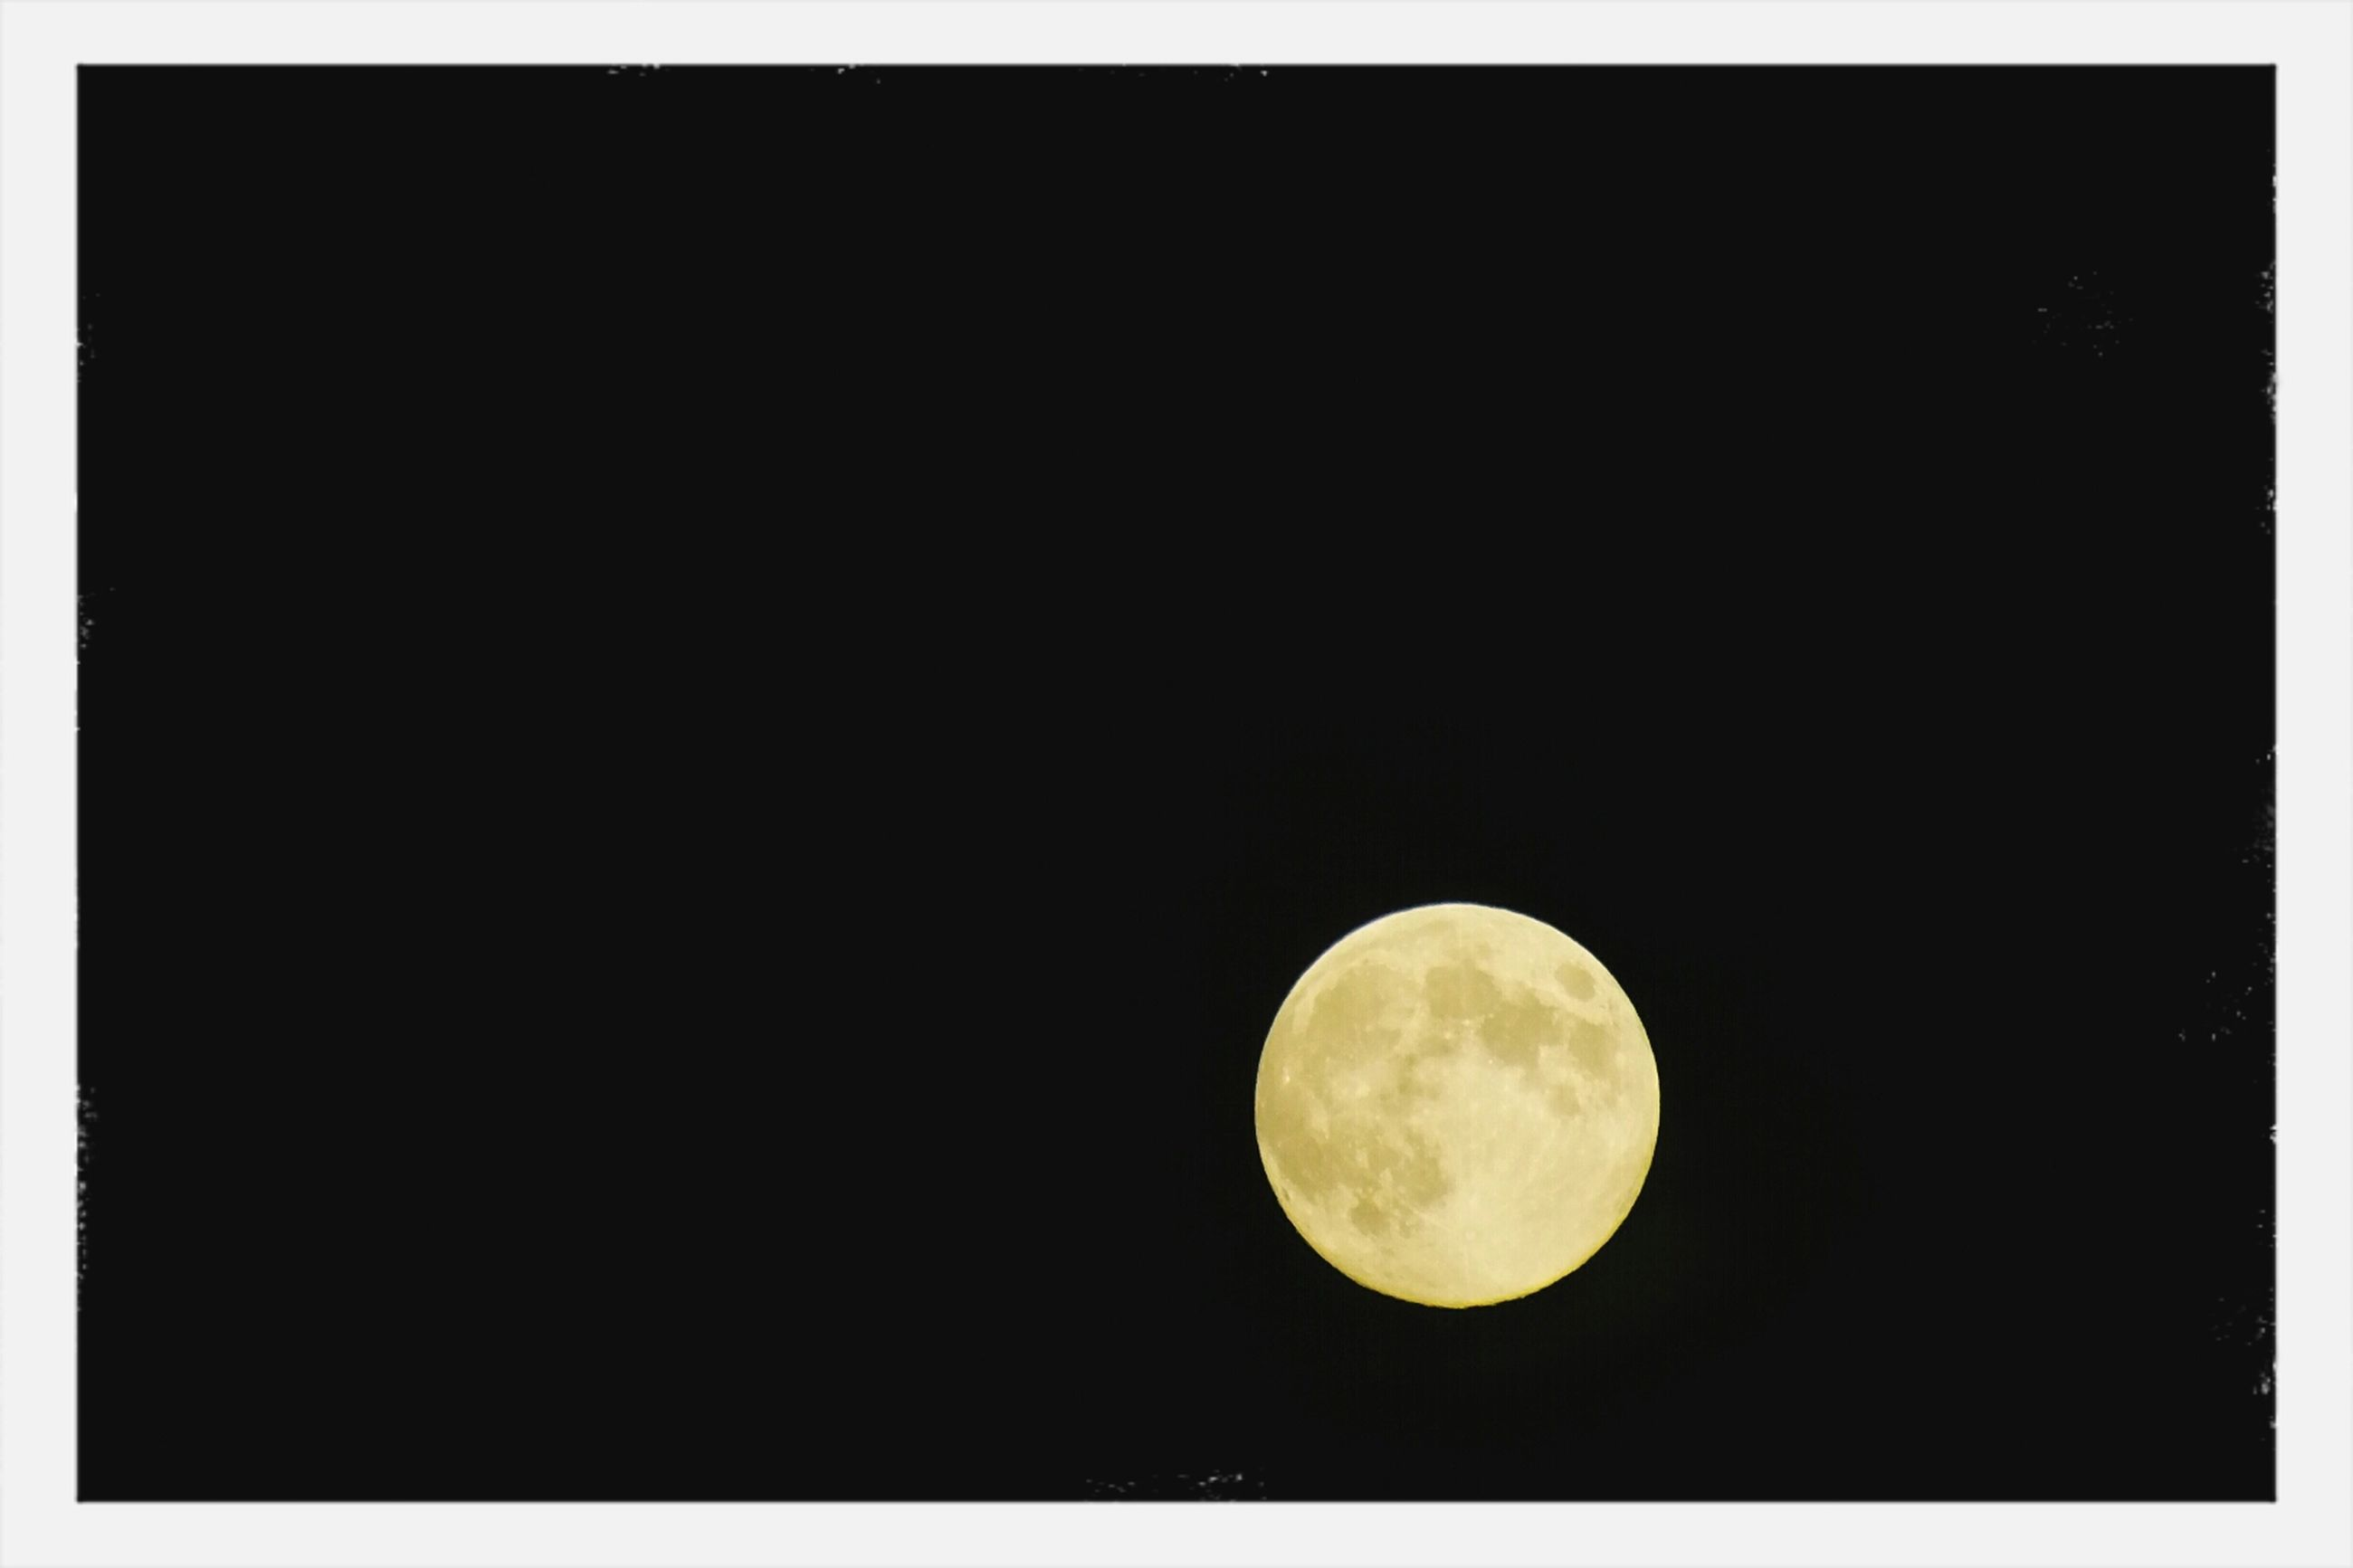 moon, night, astronomy, full moon, planetary moon, copy space, circle, beauty in nature, tranquility, moon surface, dark, nature, tranquil scene, low angle view, scenics, space exploration, sphere, discovery, transfer print, clear sky